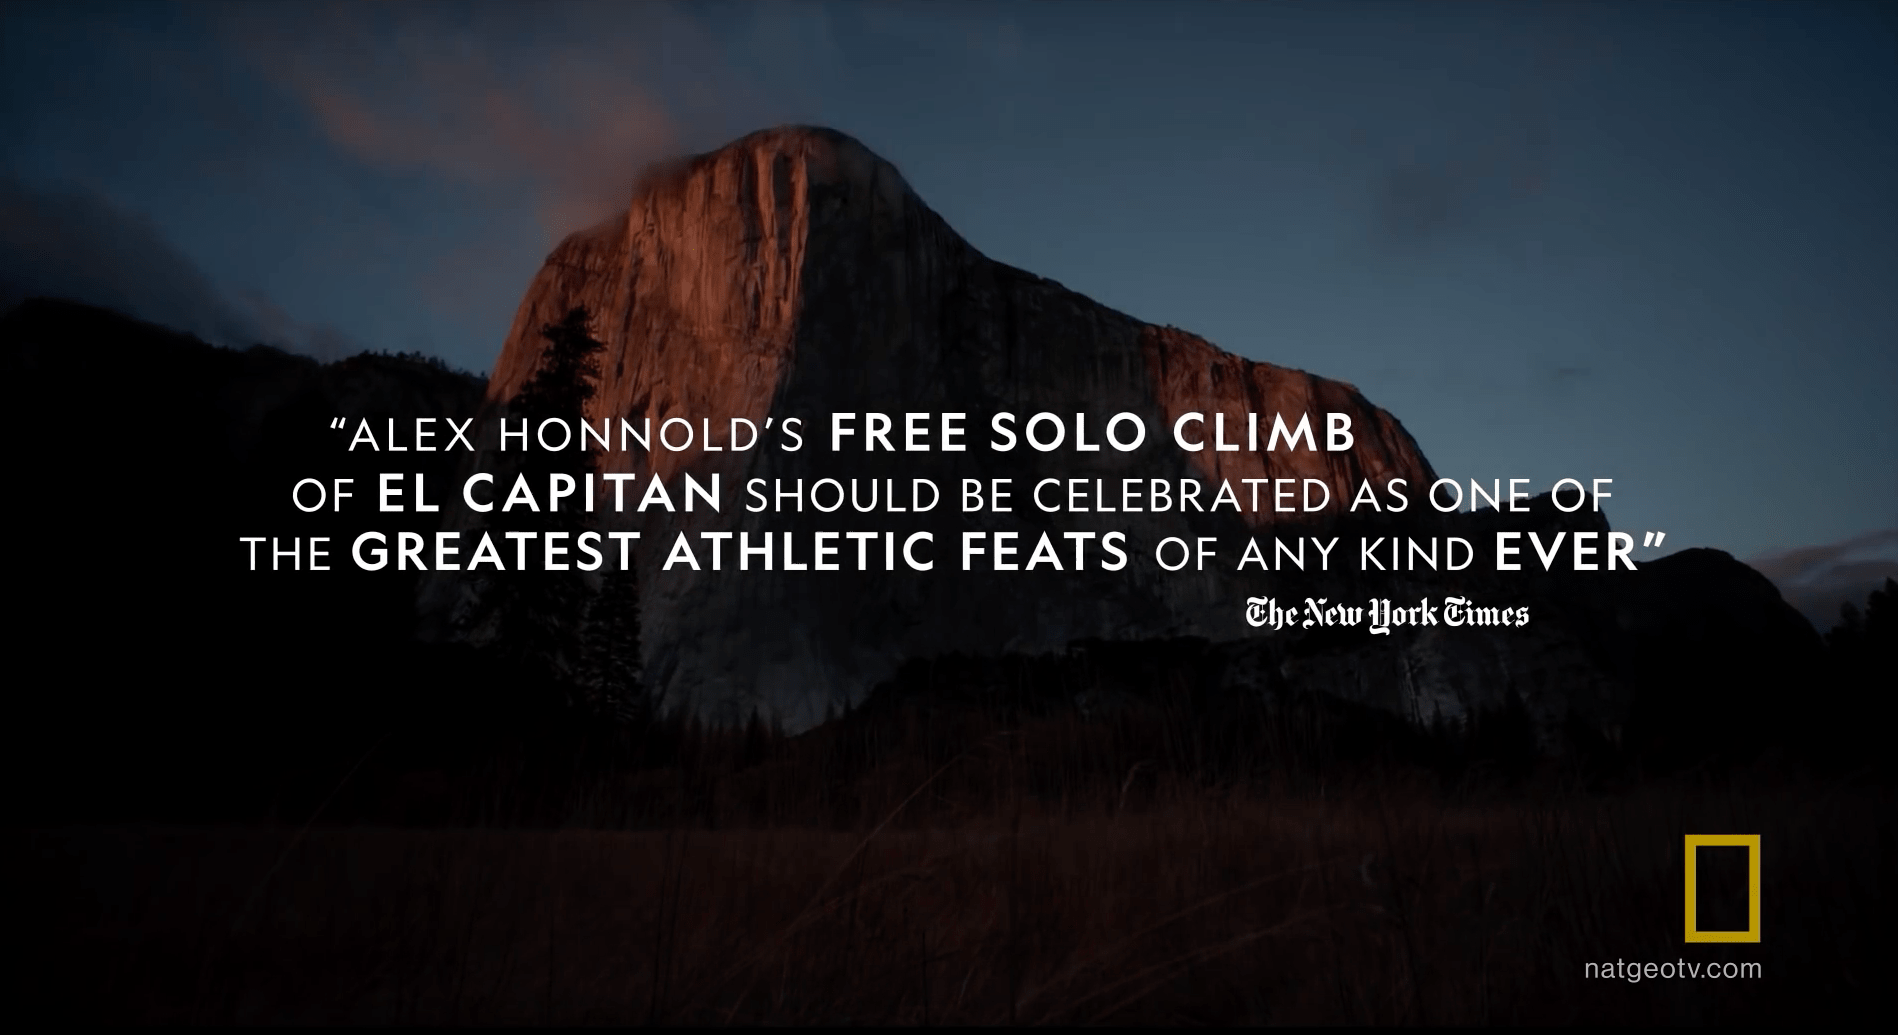 Alex honnold, El Capitan, solo climb, jimmy chin, movie trailer